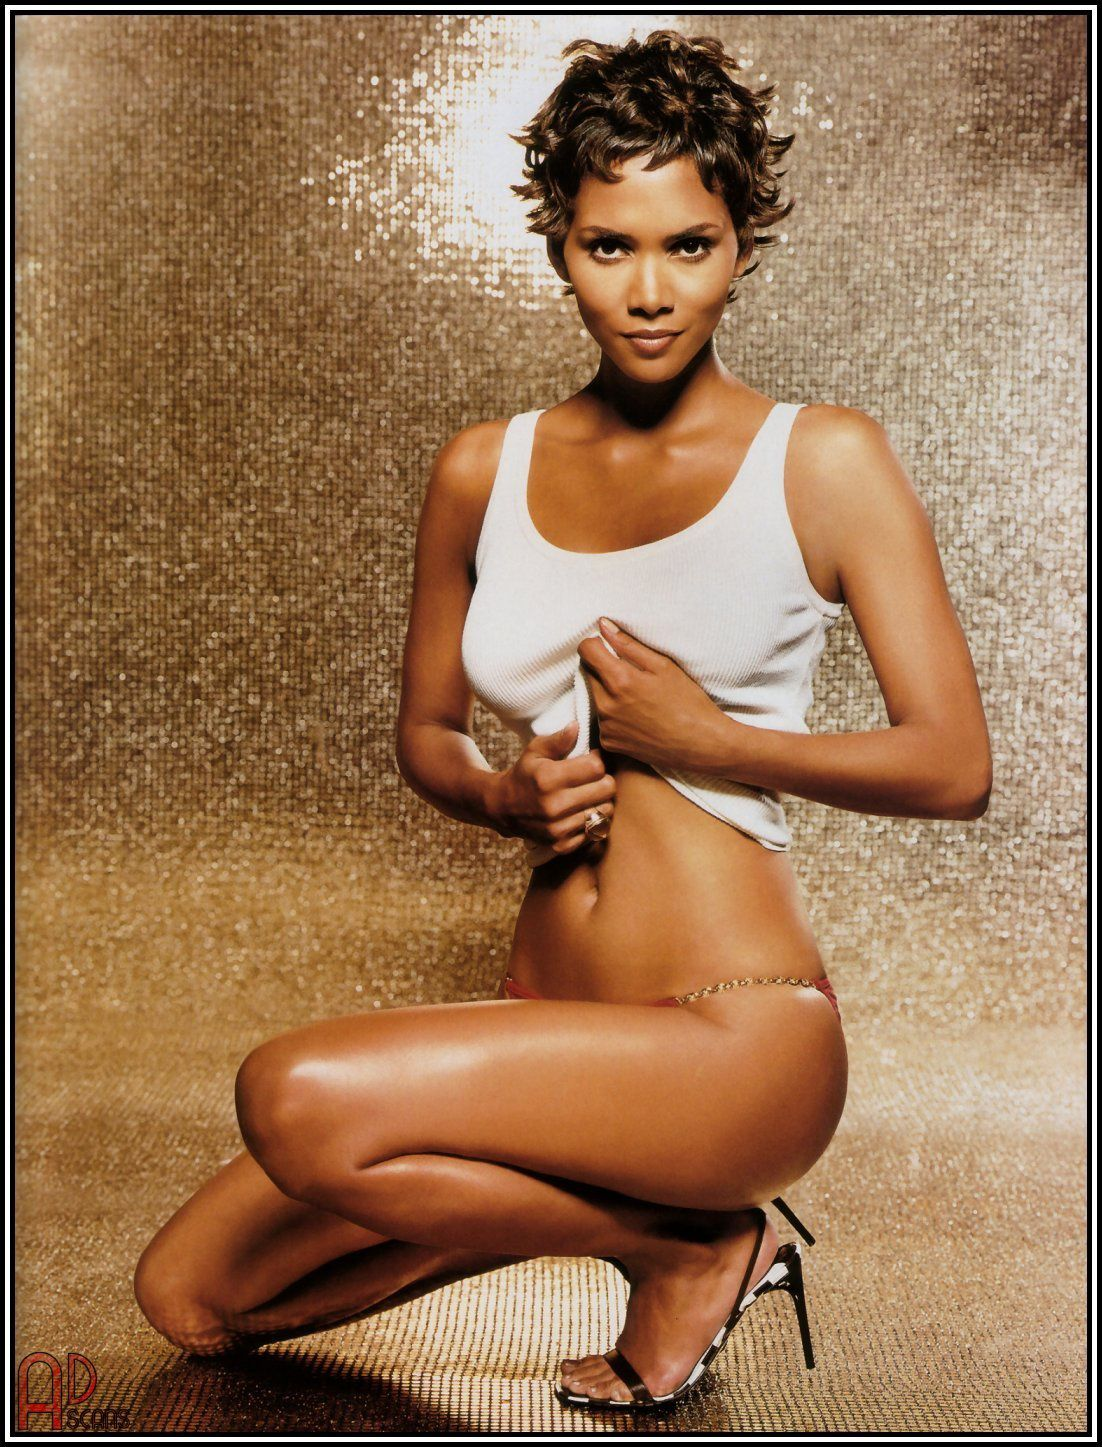 Kinsgman Golden Circle : Halle Berry au casting + poster